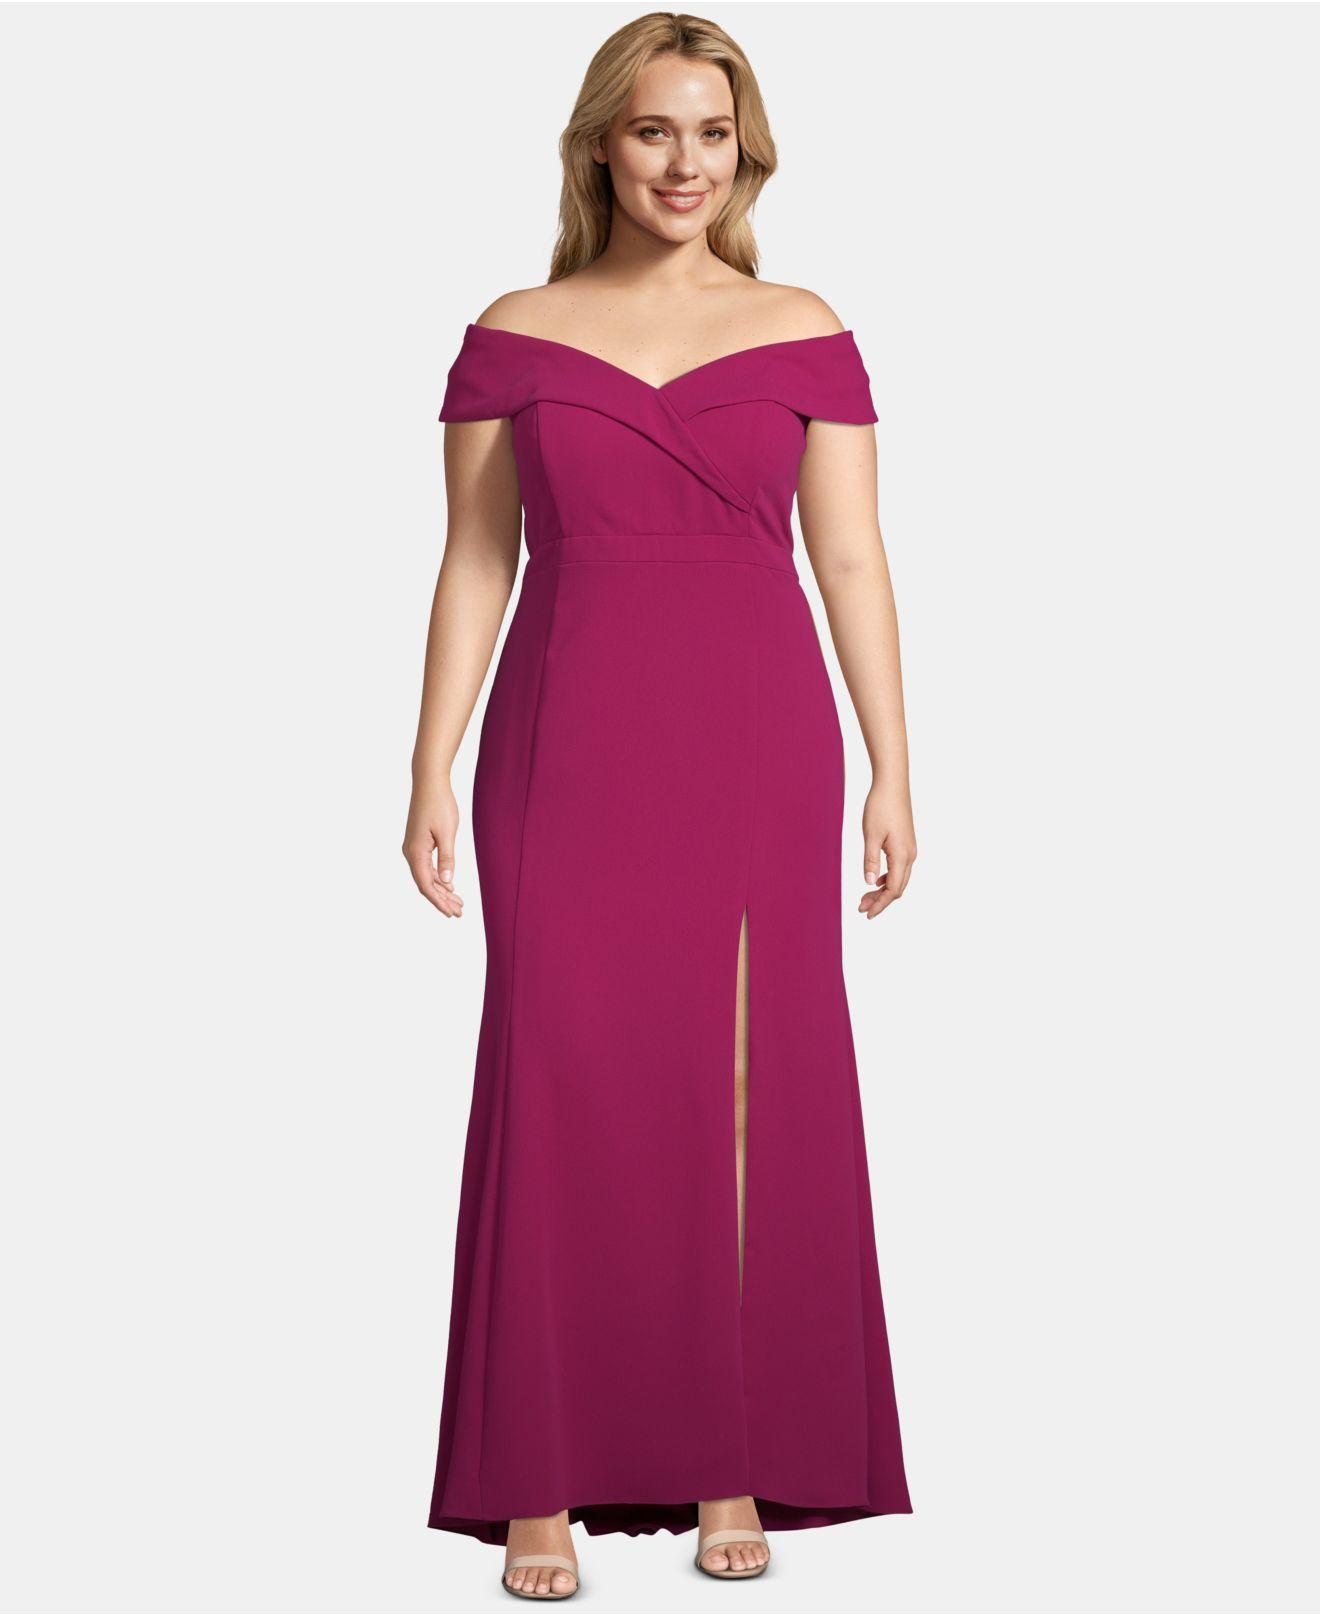 0f102a69c5331 Lyst - Xscape Plus Size Off-the-shoulder Slit Gown in Purple